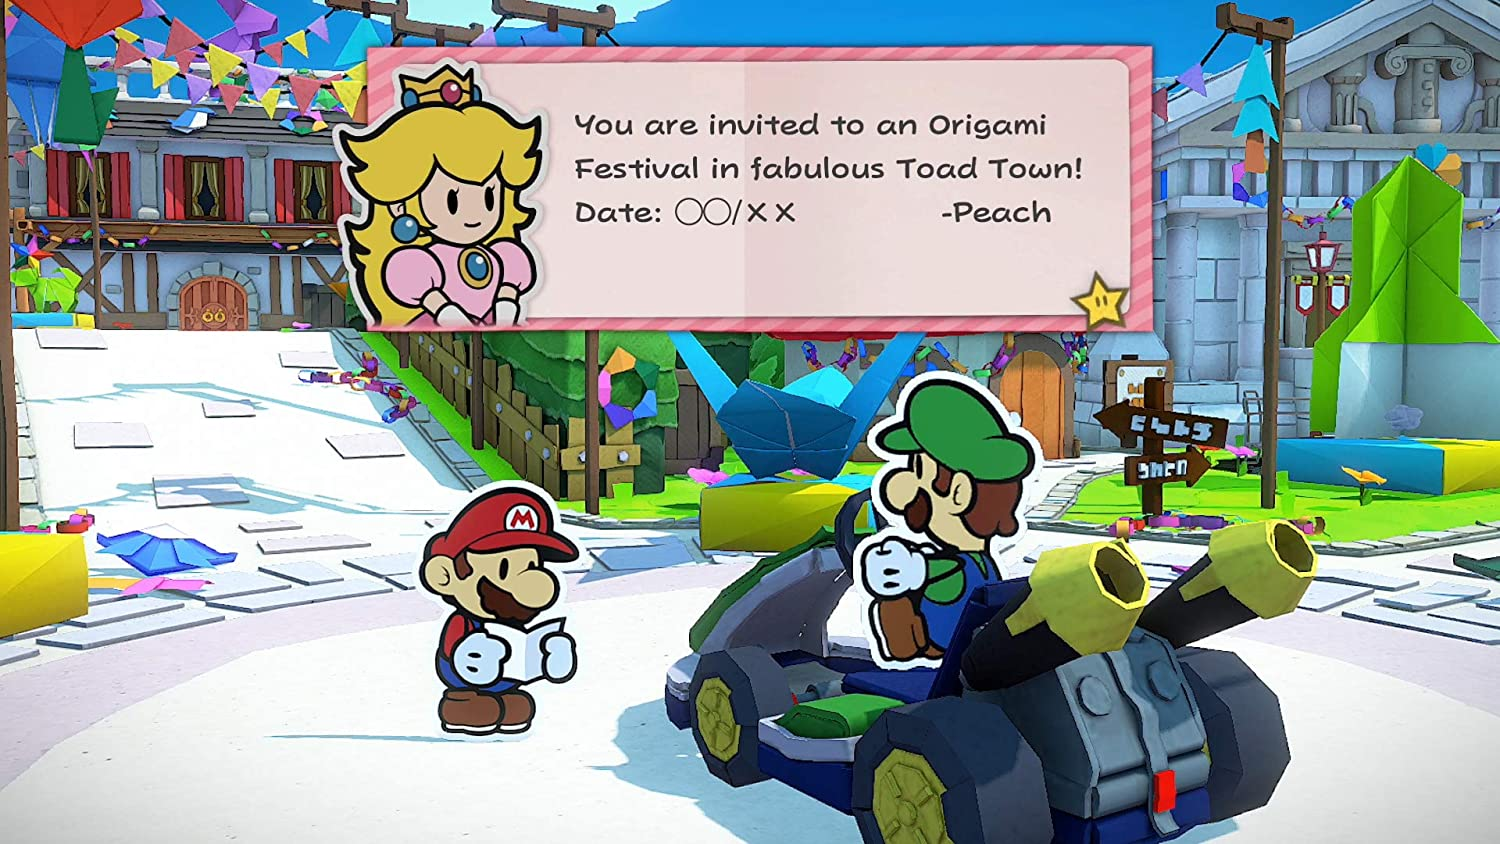 Princess Peach welcomes Mario and Luigi to Toad Town for a special origami event.